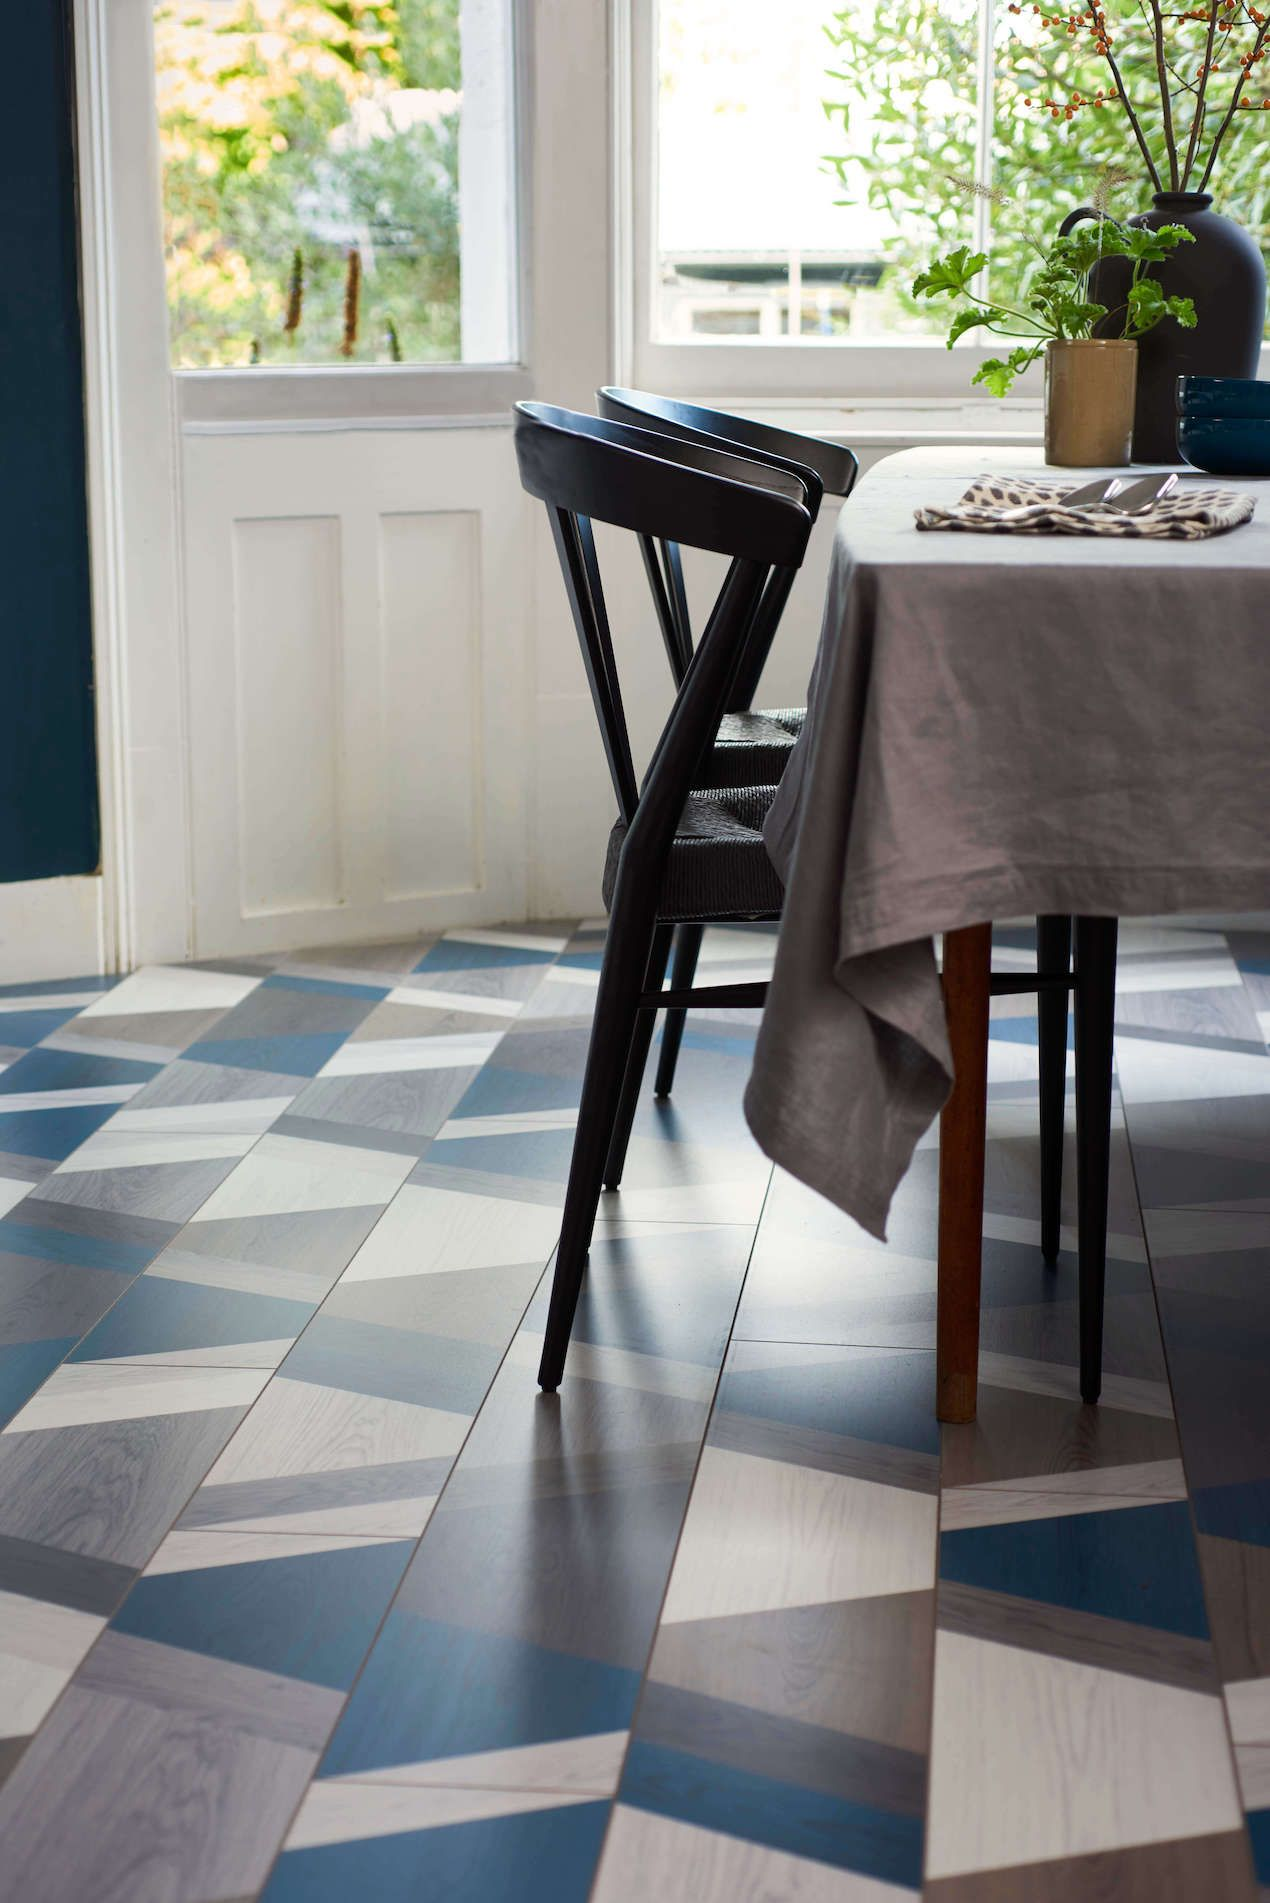 4 New Flooring Trends For 2019 Welovehome Home Flooring